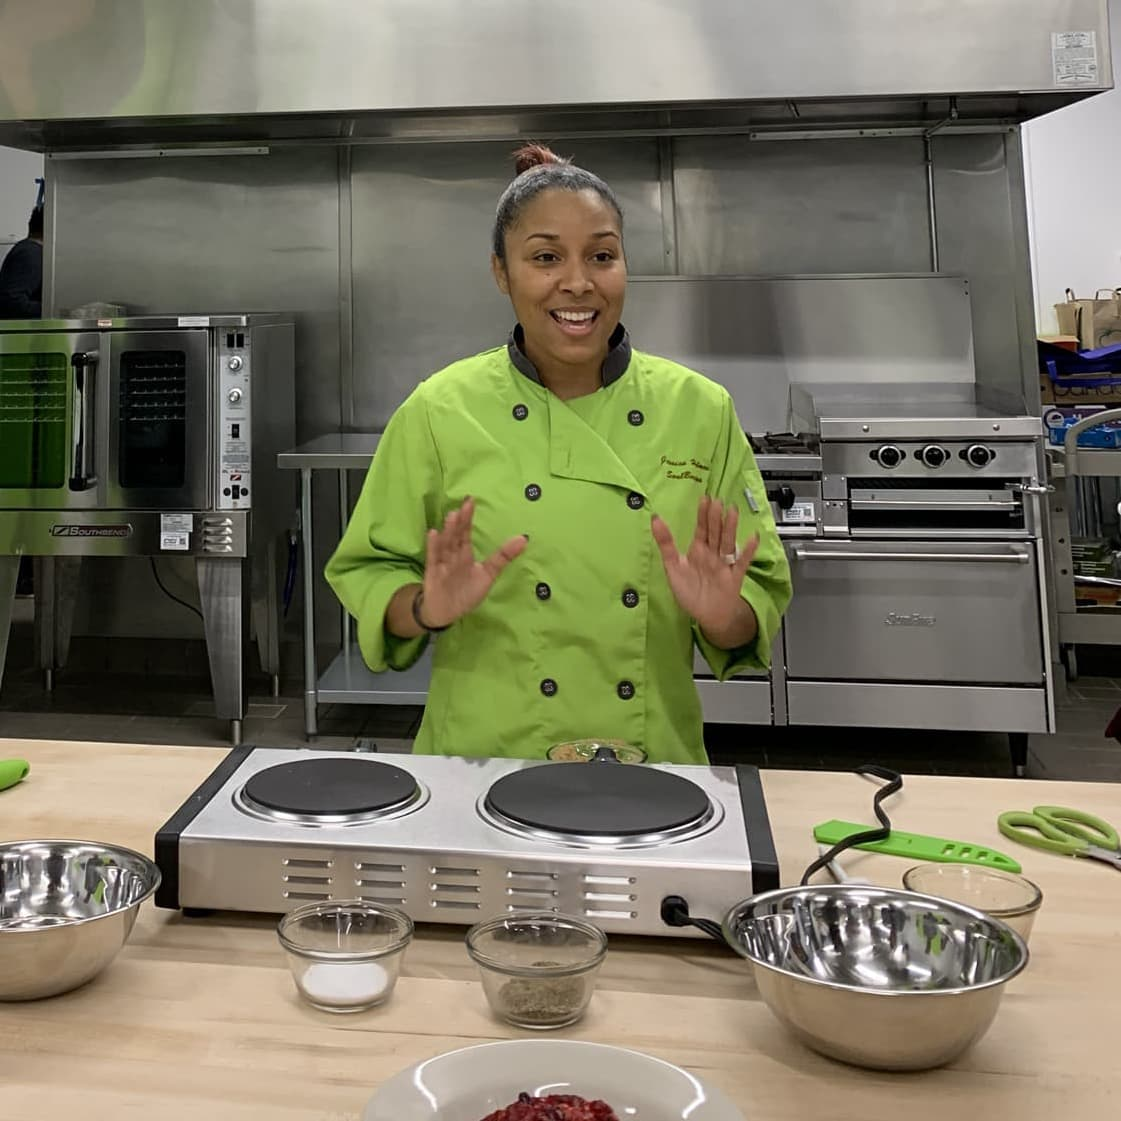 Chef cooking at Englewood Community Kitchens